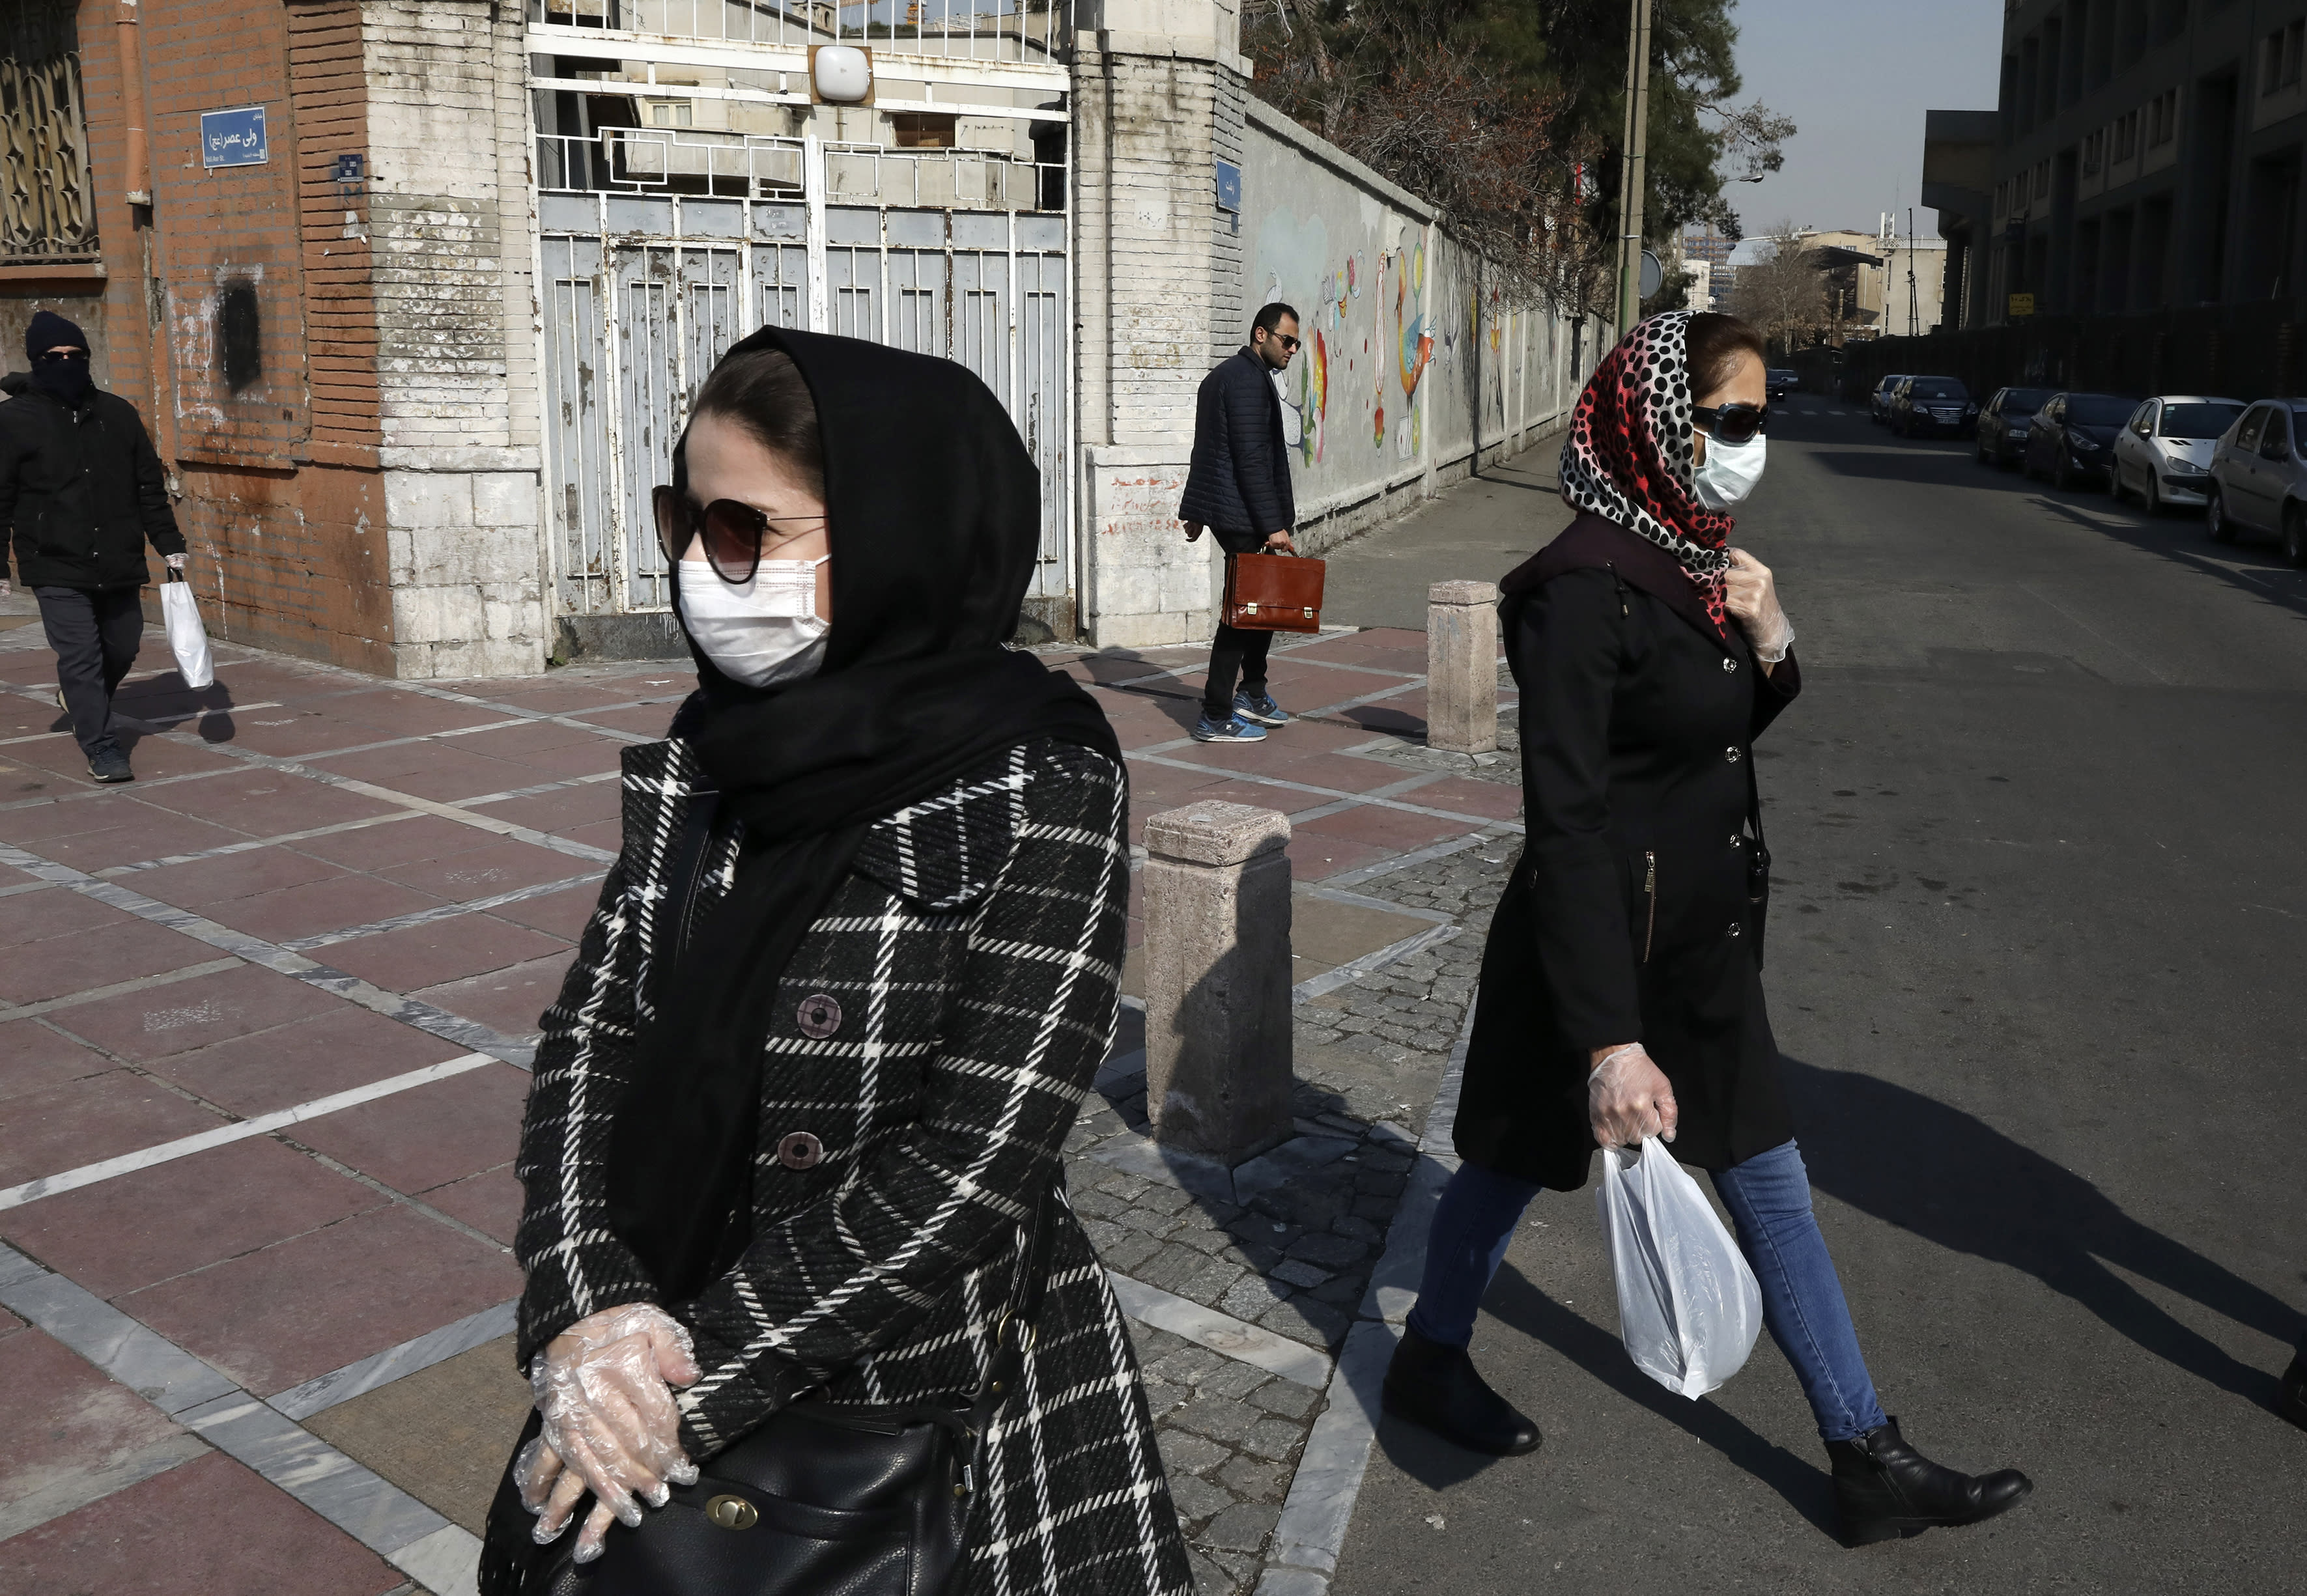 Pedestrians walk as some of them wear masks in downtown Tehran, Iran, Thursday, Feb. 27, 2020. Amid fear and uncertainty caused by the spread of a new virus, Iranians are taking extra caution to avoid getting infected, as authorities canceled Friday prayers in Tehran, Qom and other cities. (AP Photo/Vahid Salemi)